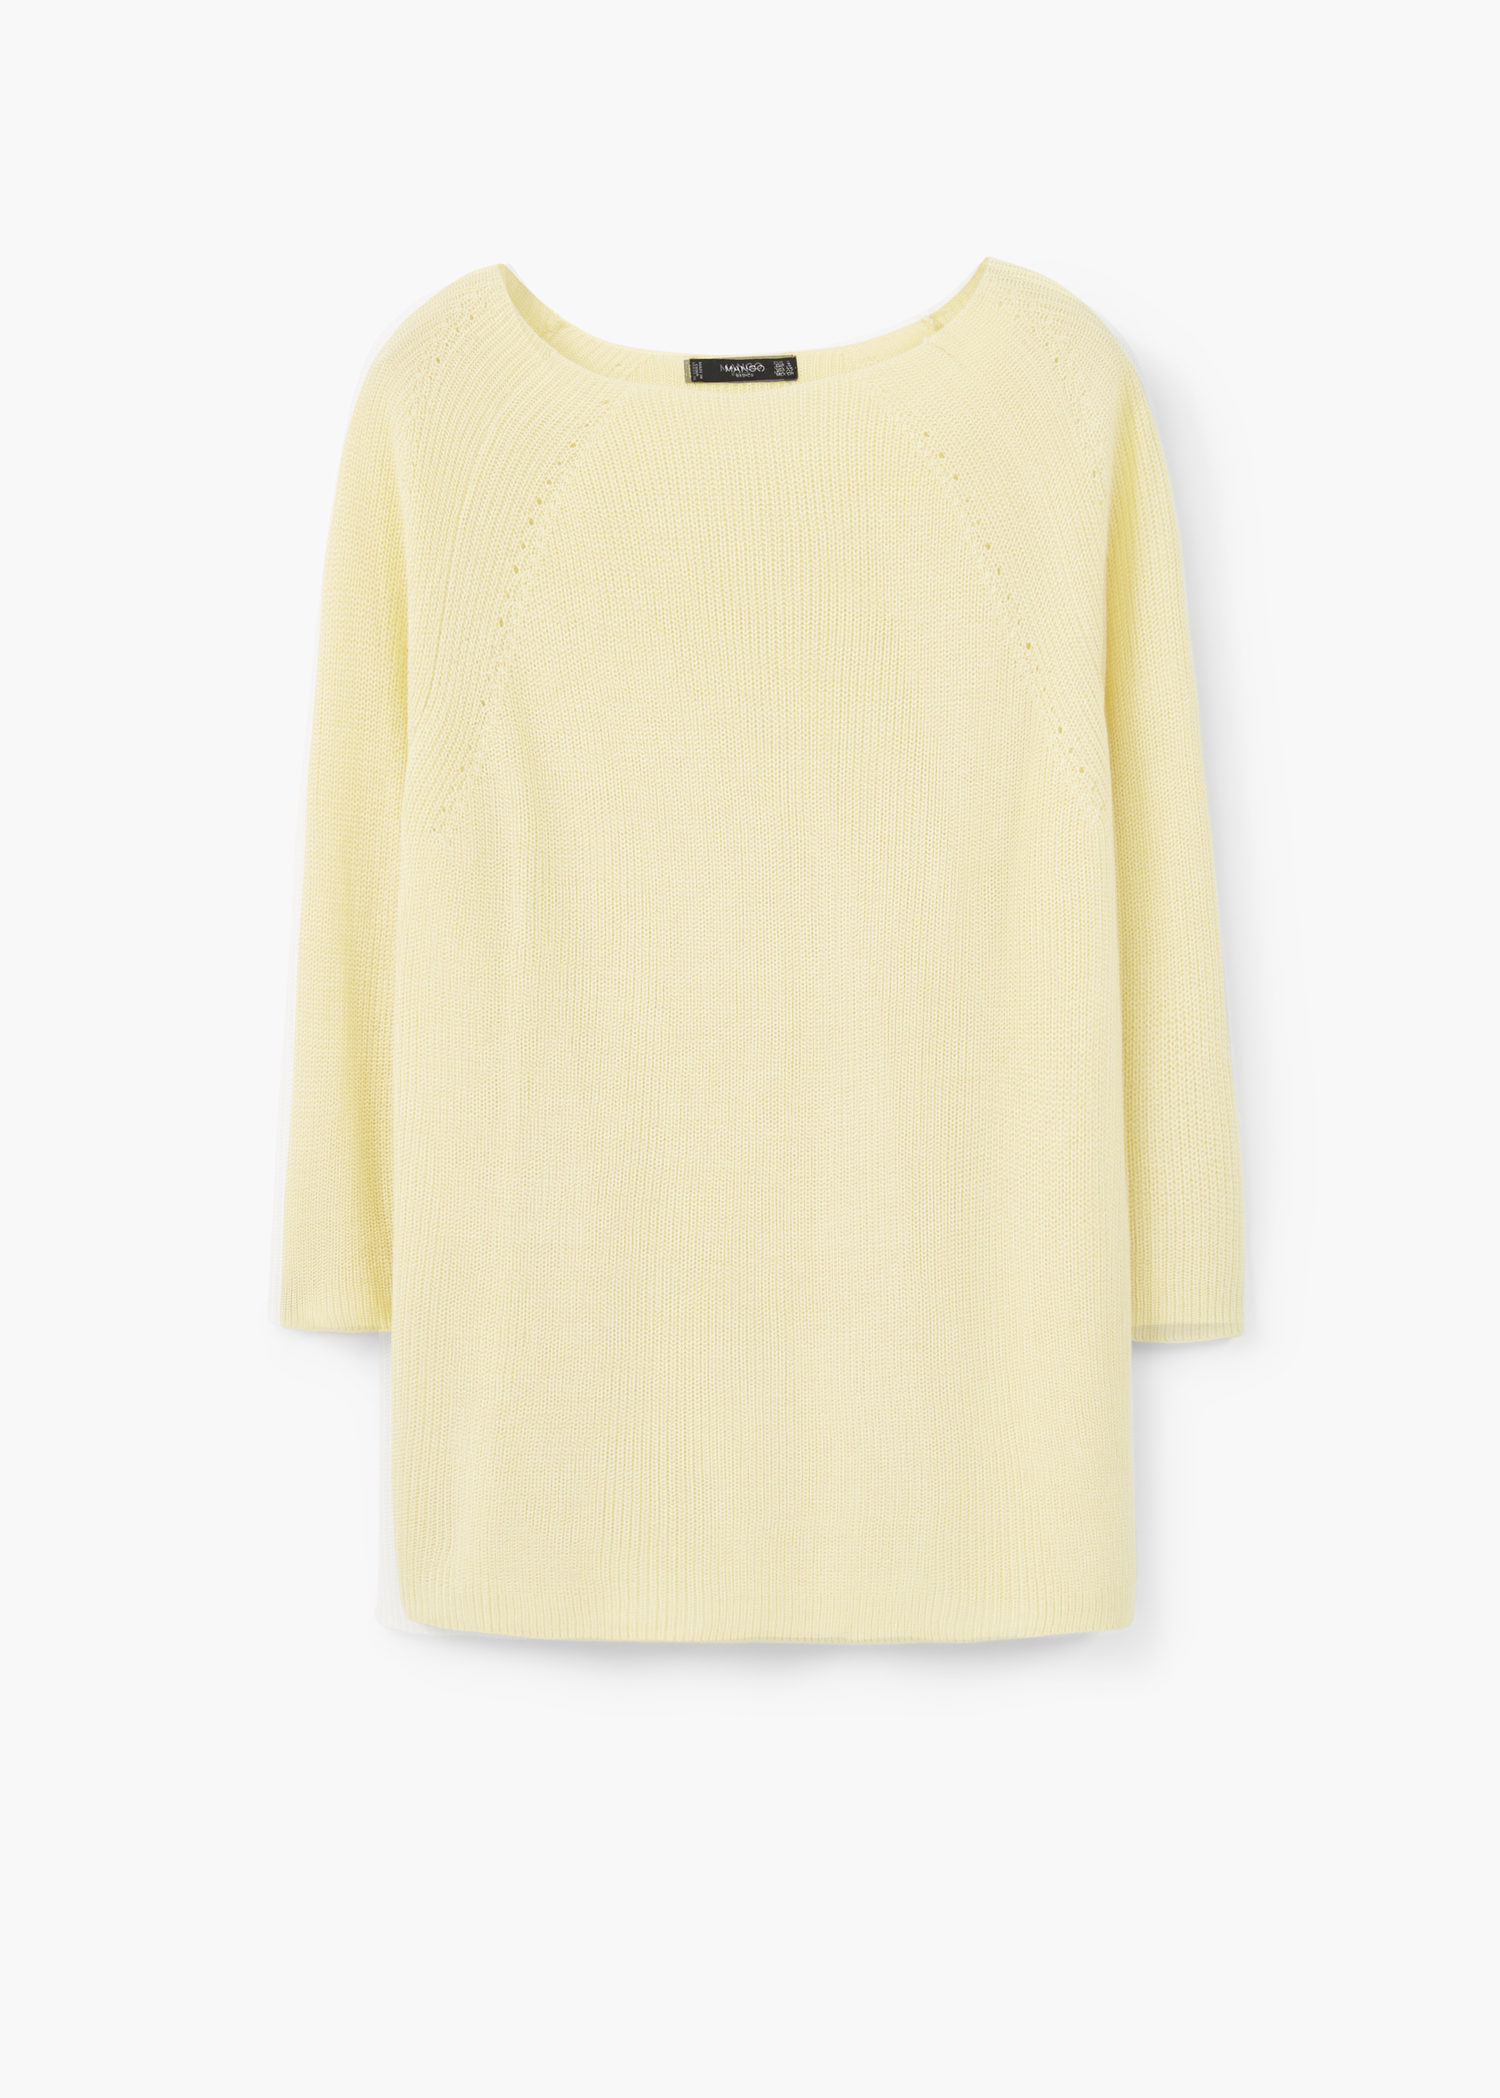 Mango Ribbed Sweater in Yellow | Lyst